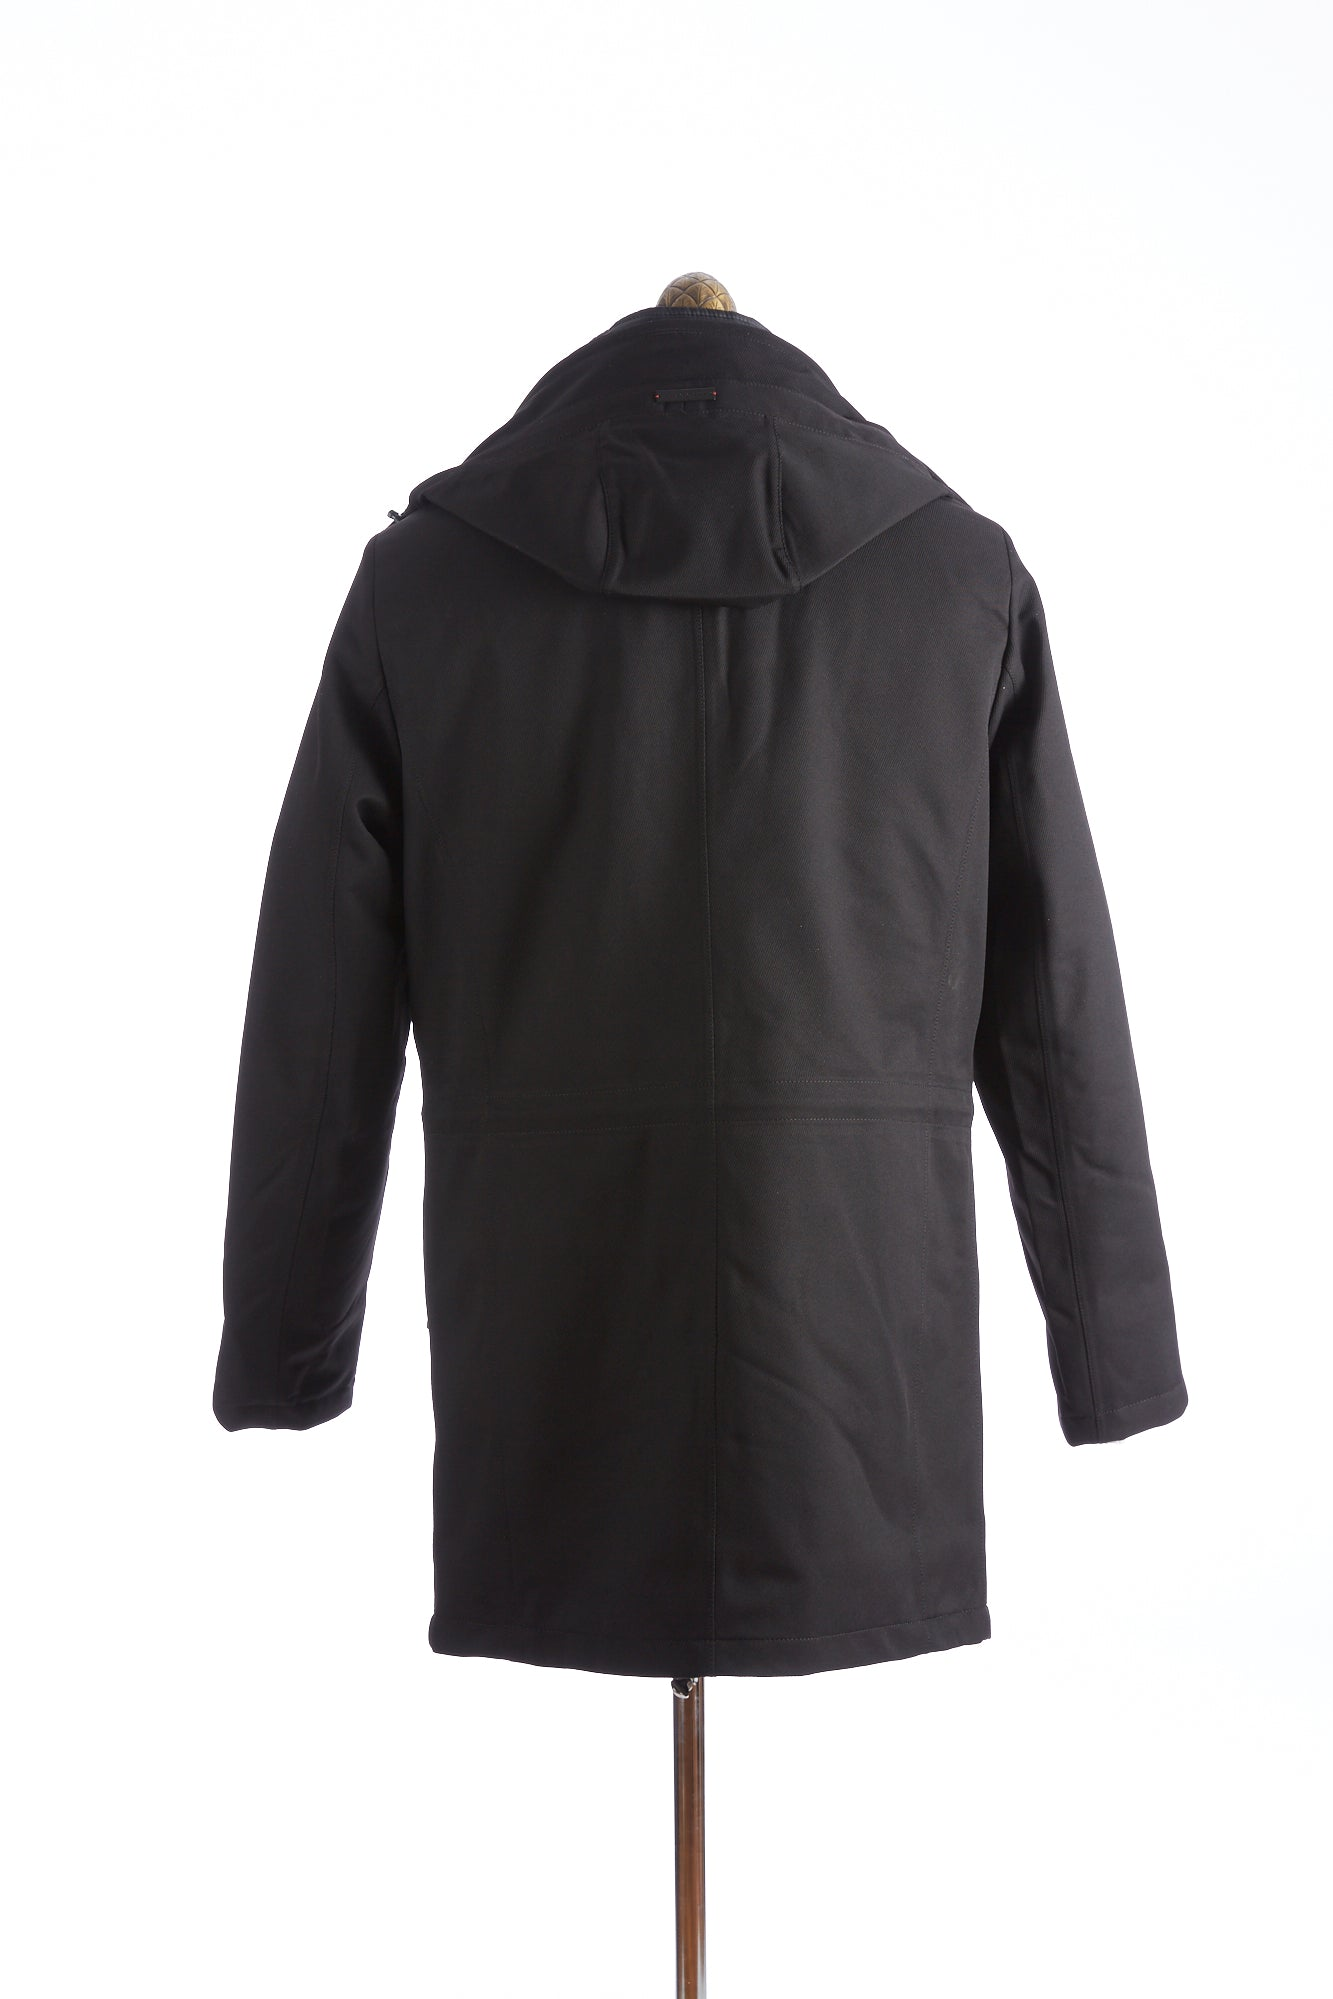 Bugatti Black Waterproof Hooded Parka Open Back